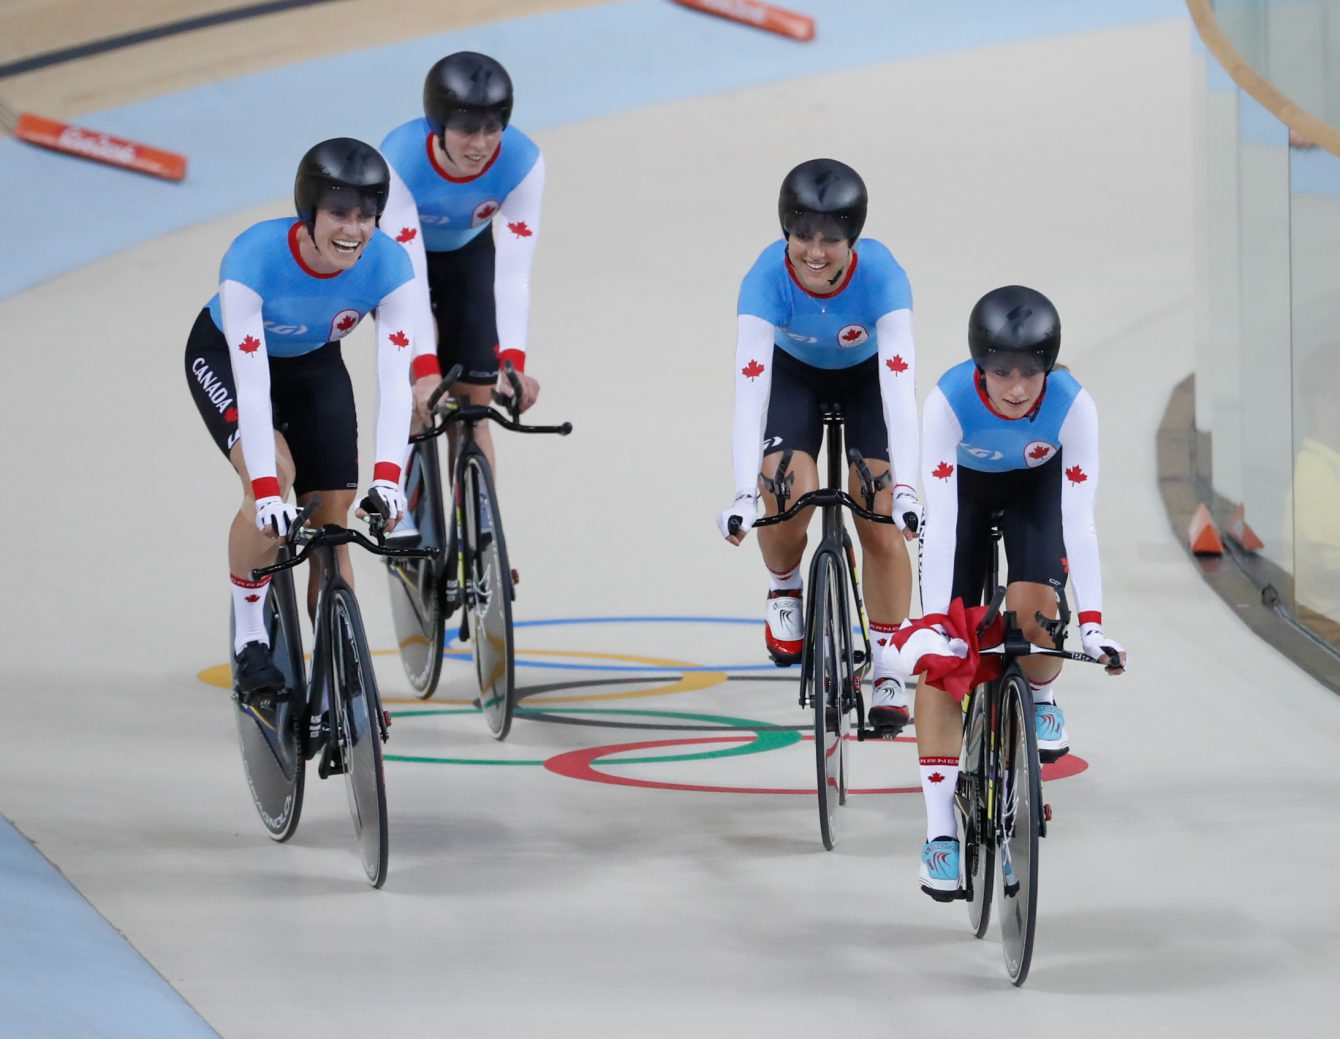 Canada's women's team pursuit team Allison Beveridge, Jasmin Glaesser, Kirsti Lay, and Georgia Simmerling race after winning the bronze medal at the velodrome at the Olympic games in Rio de Janeiro, Brazil, Saturday August 13, 2016. (photo/ Mark Blinch)